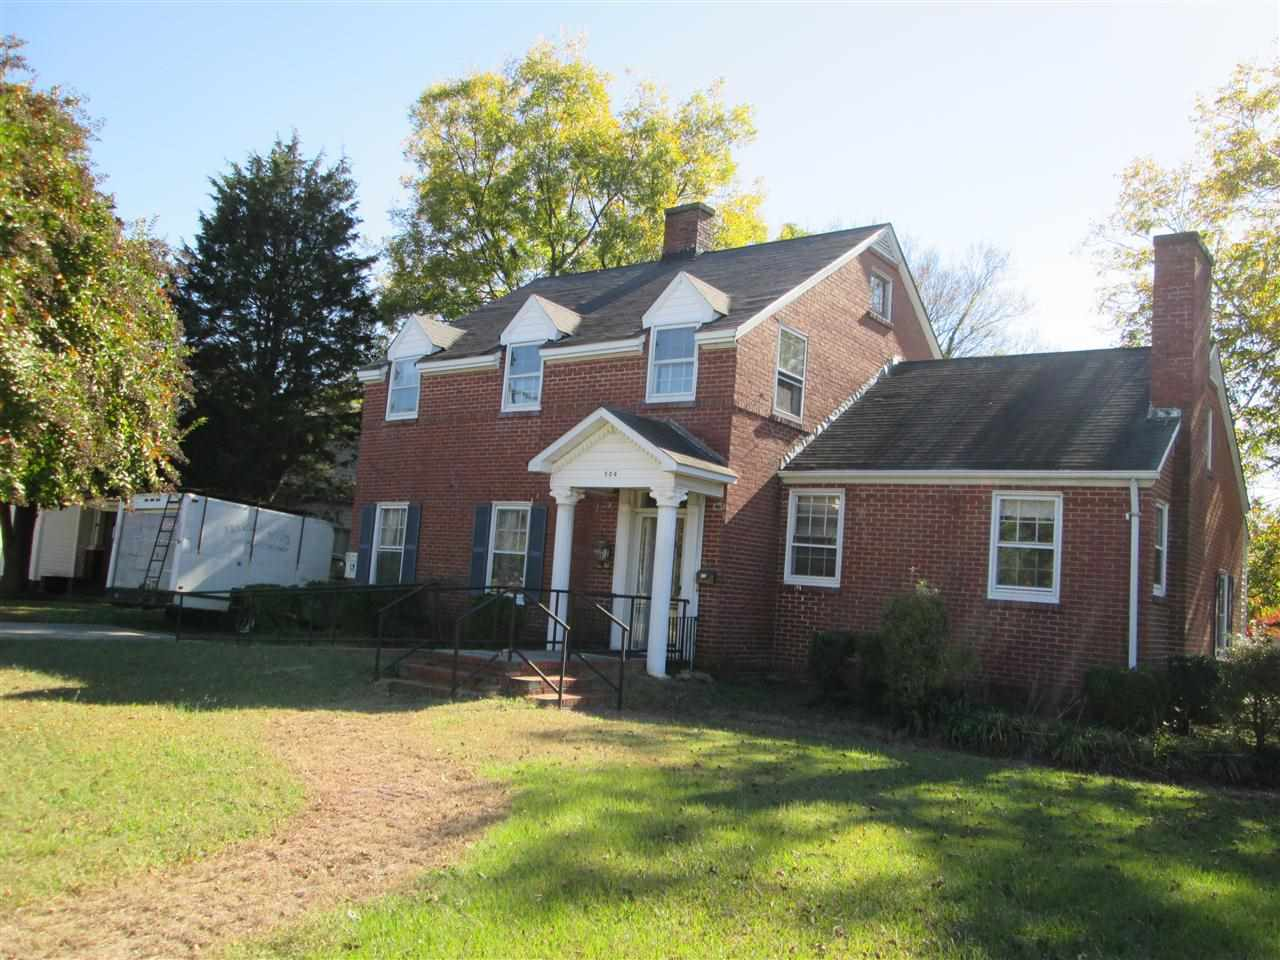 Commercial Property for Sale, ListingId:30668591, location: 504 E Main Street Rock Hill 29730